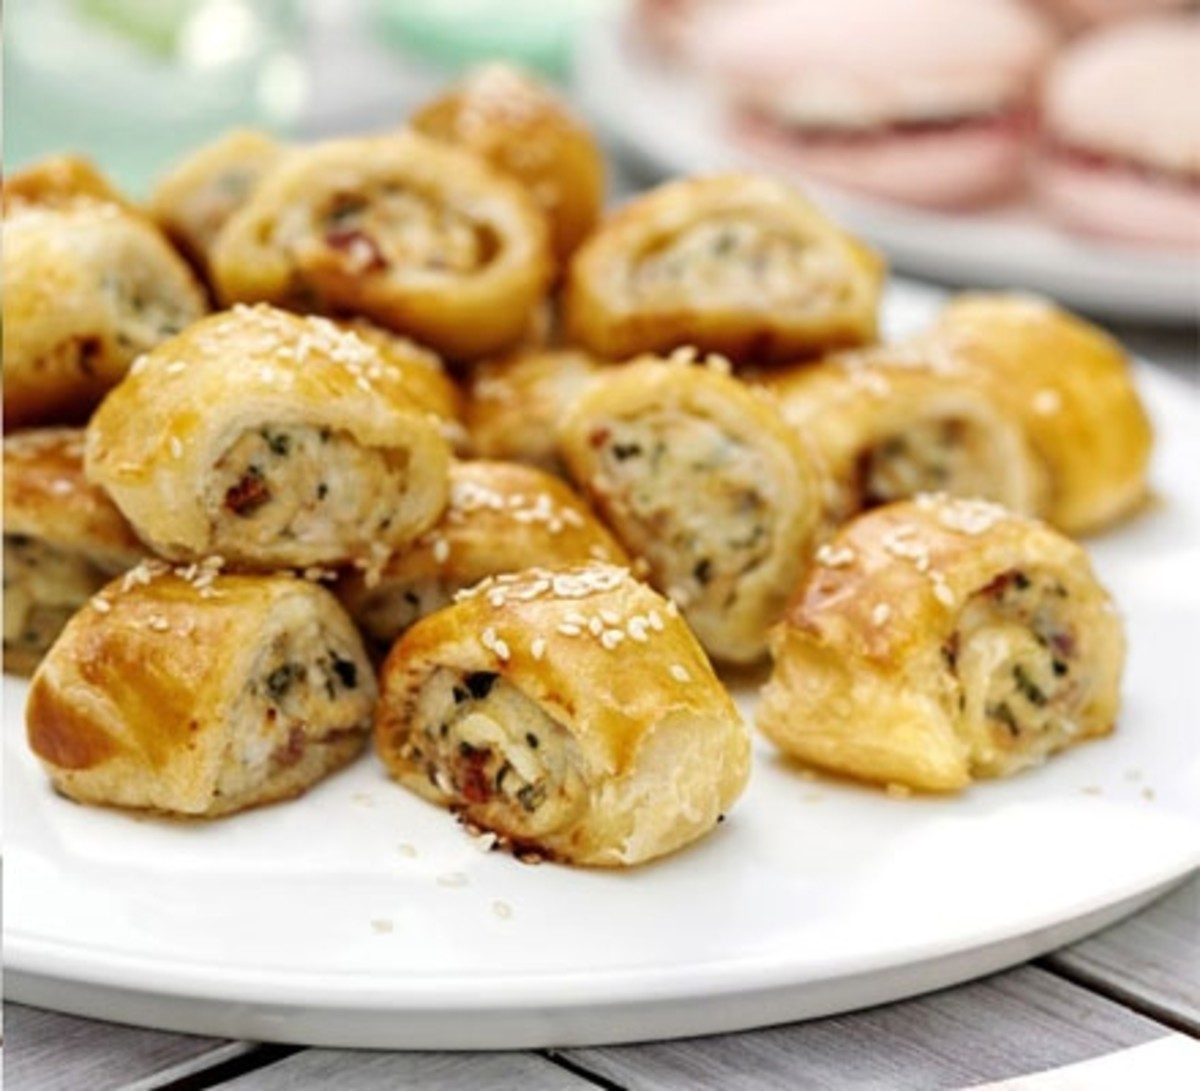 Sausage Rolls Recipe By Emmas Lewis  Source:http://www.bbcgoodfood.com/recipes/11610/summer-sausage-rolls